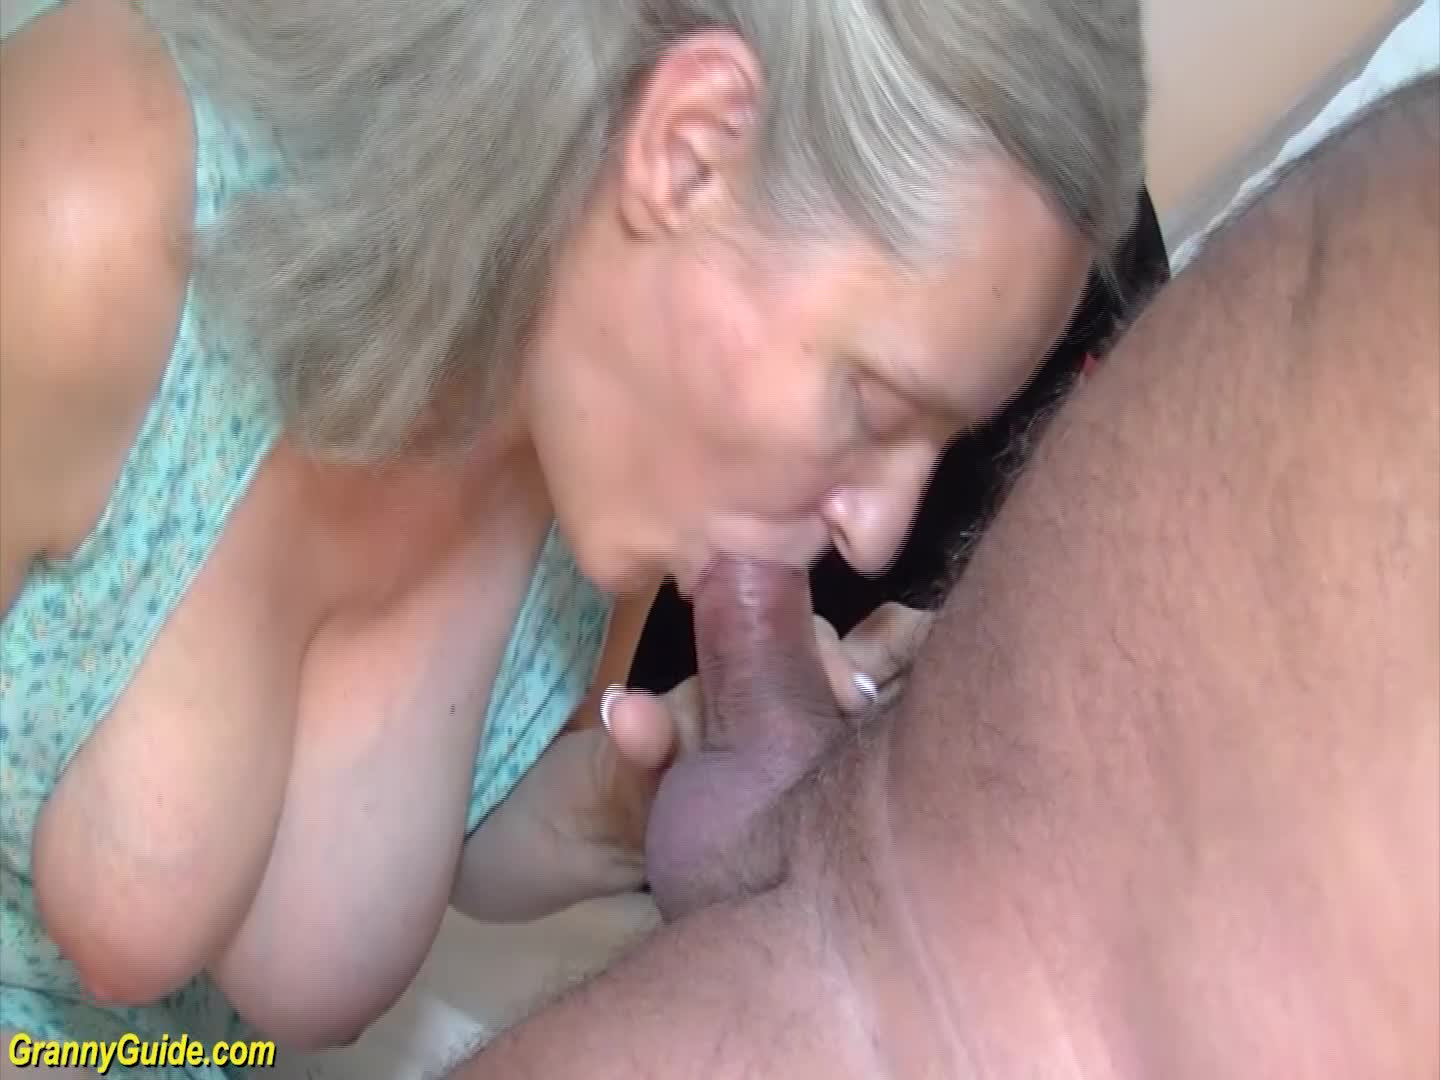 Creampie no birth control free porn